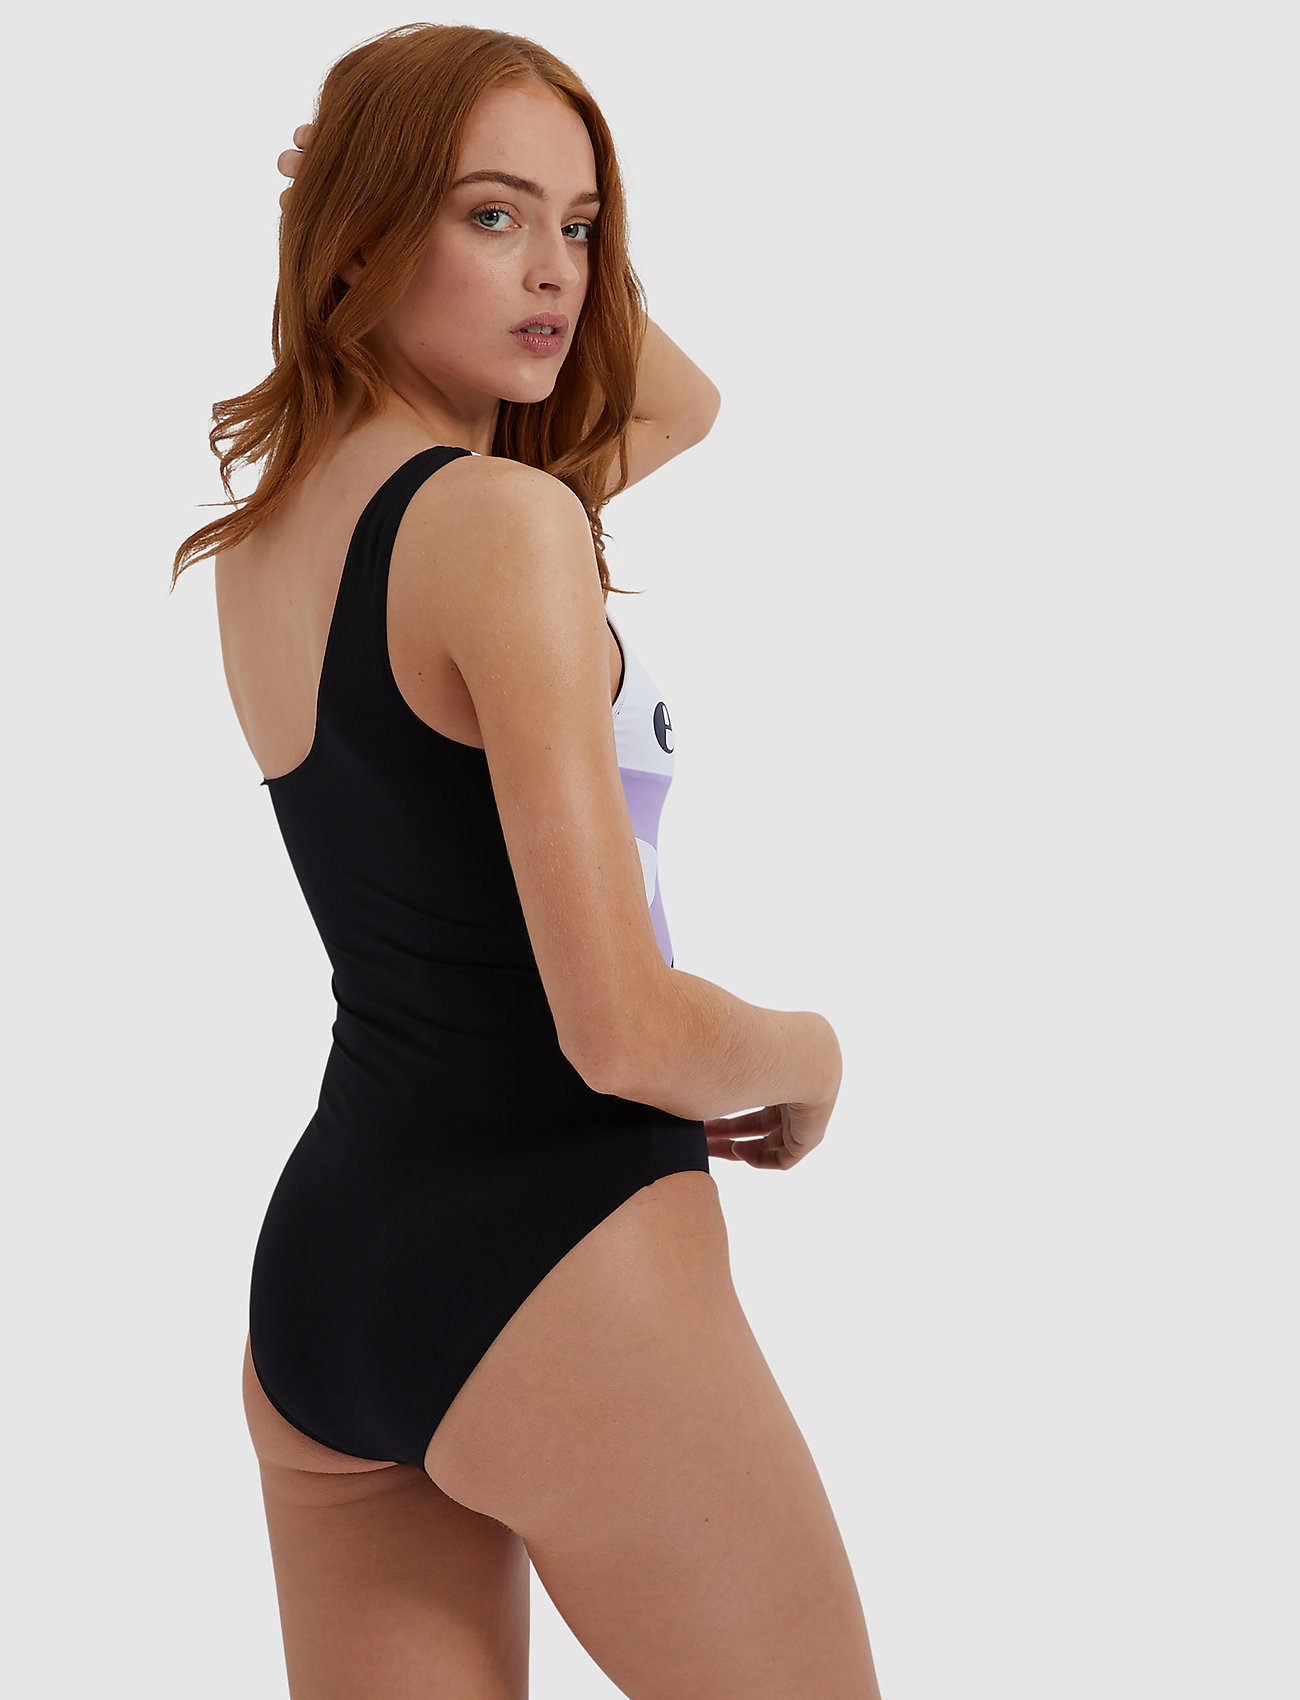 El Ogni Swimsuit (Black) (275 kr) - Ellesse